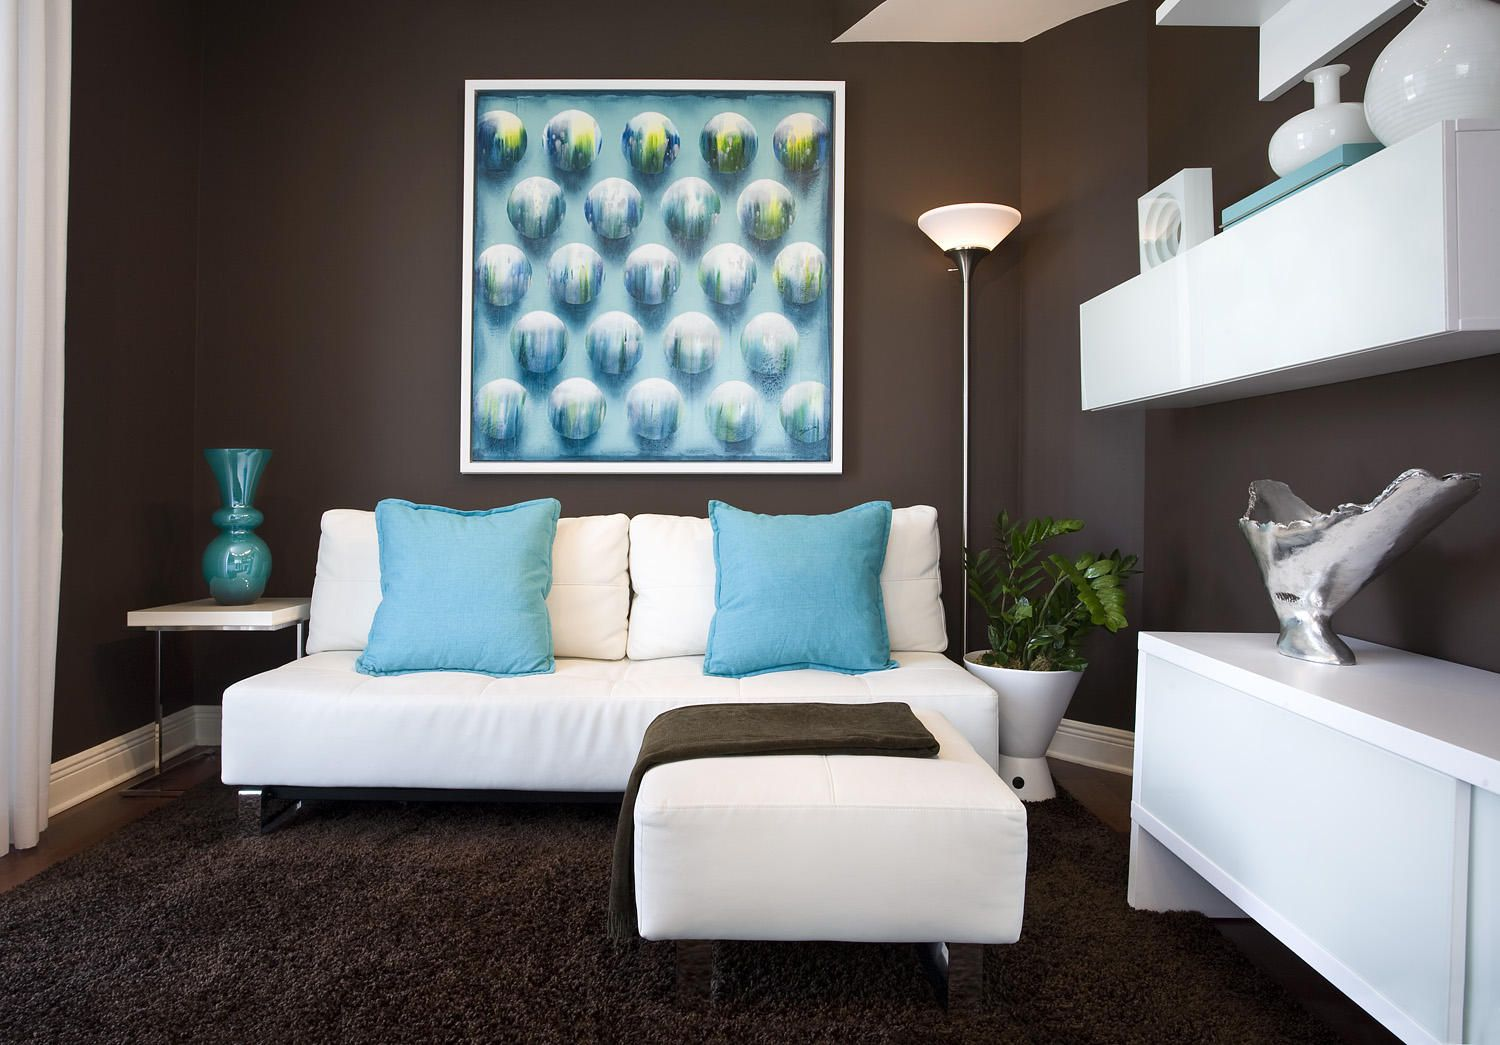 51 Stunning Turquoise Room Ideas To Freshen Up Your Home Living Room Turquoise Brown And Blue Living Room Living Room Decor Gray